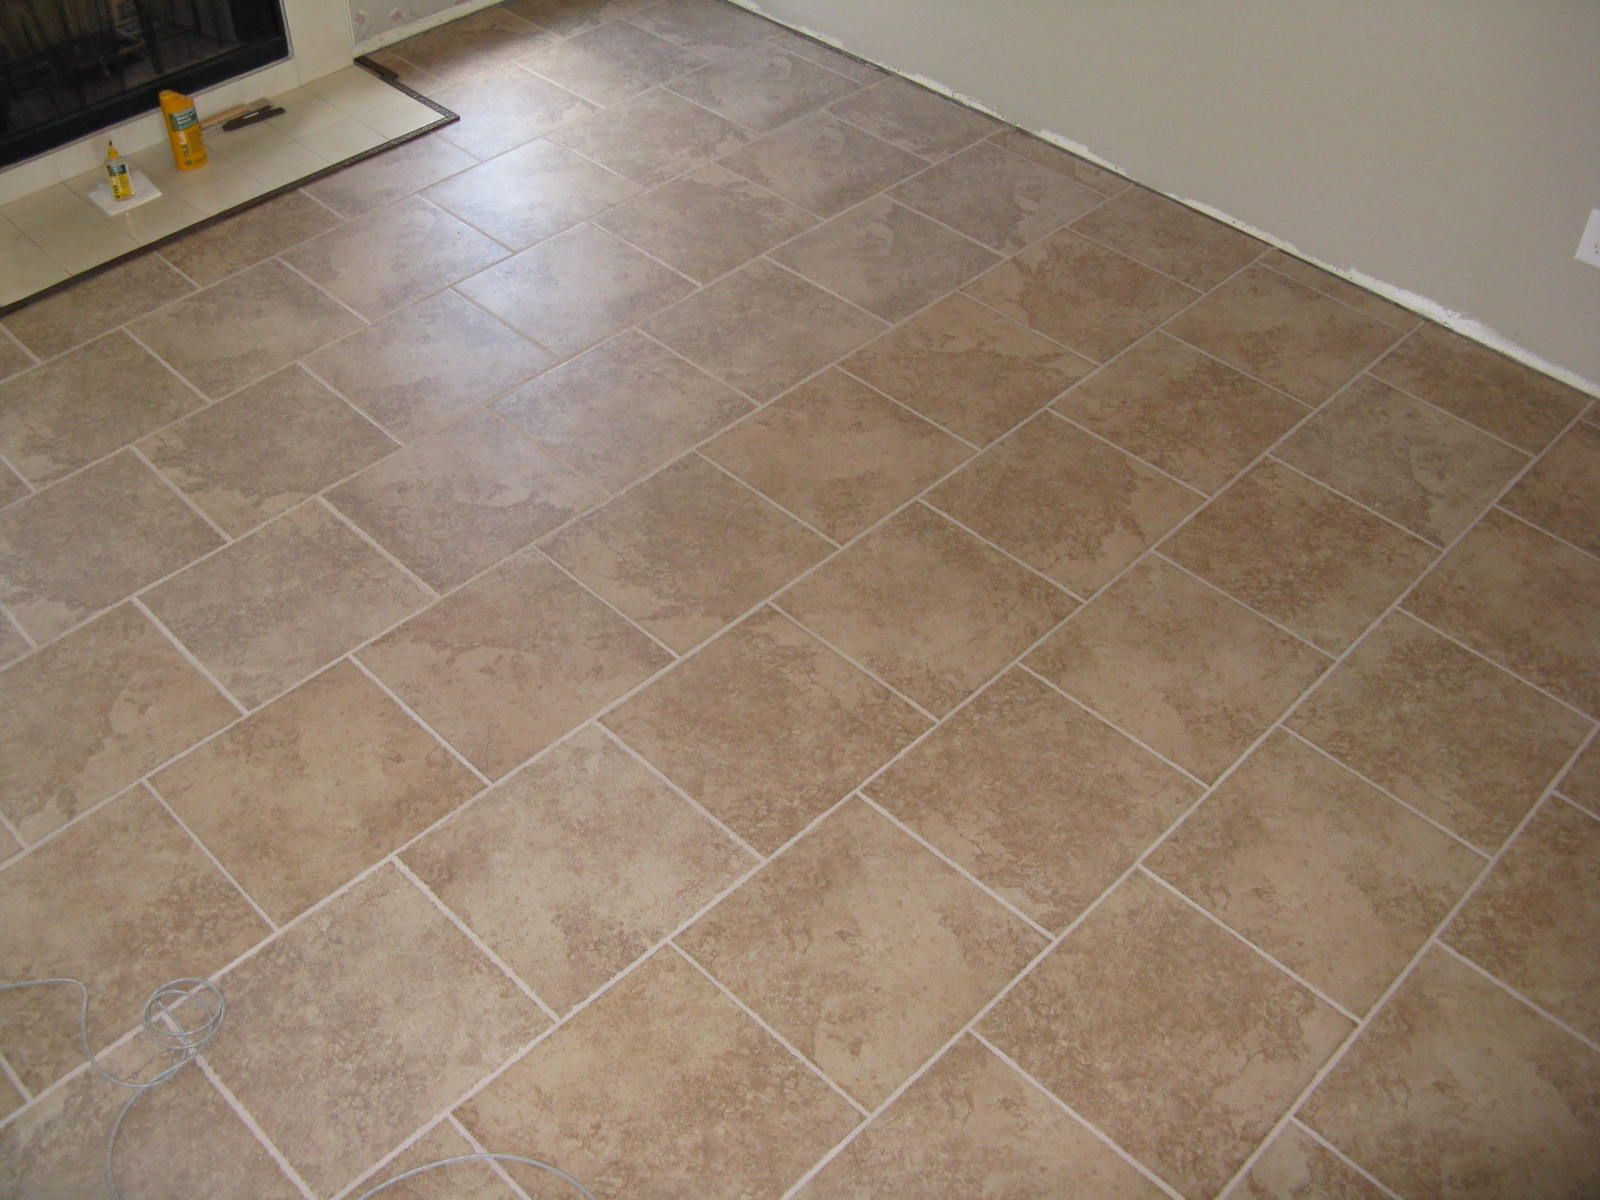 Porcelain Tile Patterns | CERAMIC TILE WORK/DESIGN | kitchen floor ...